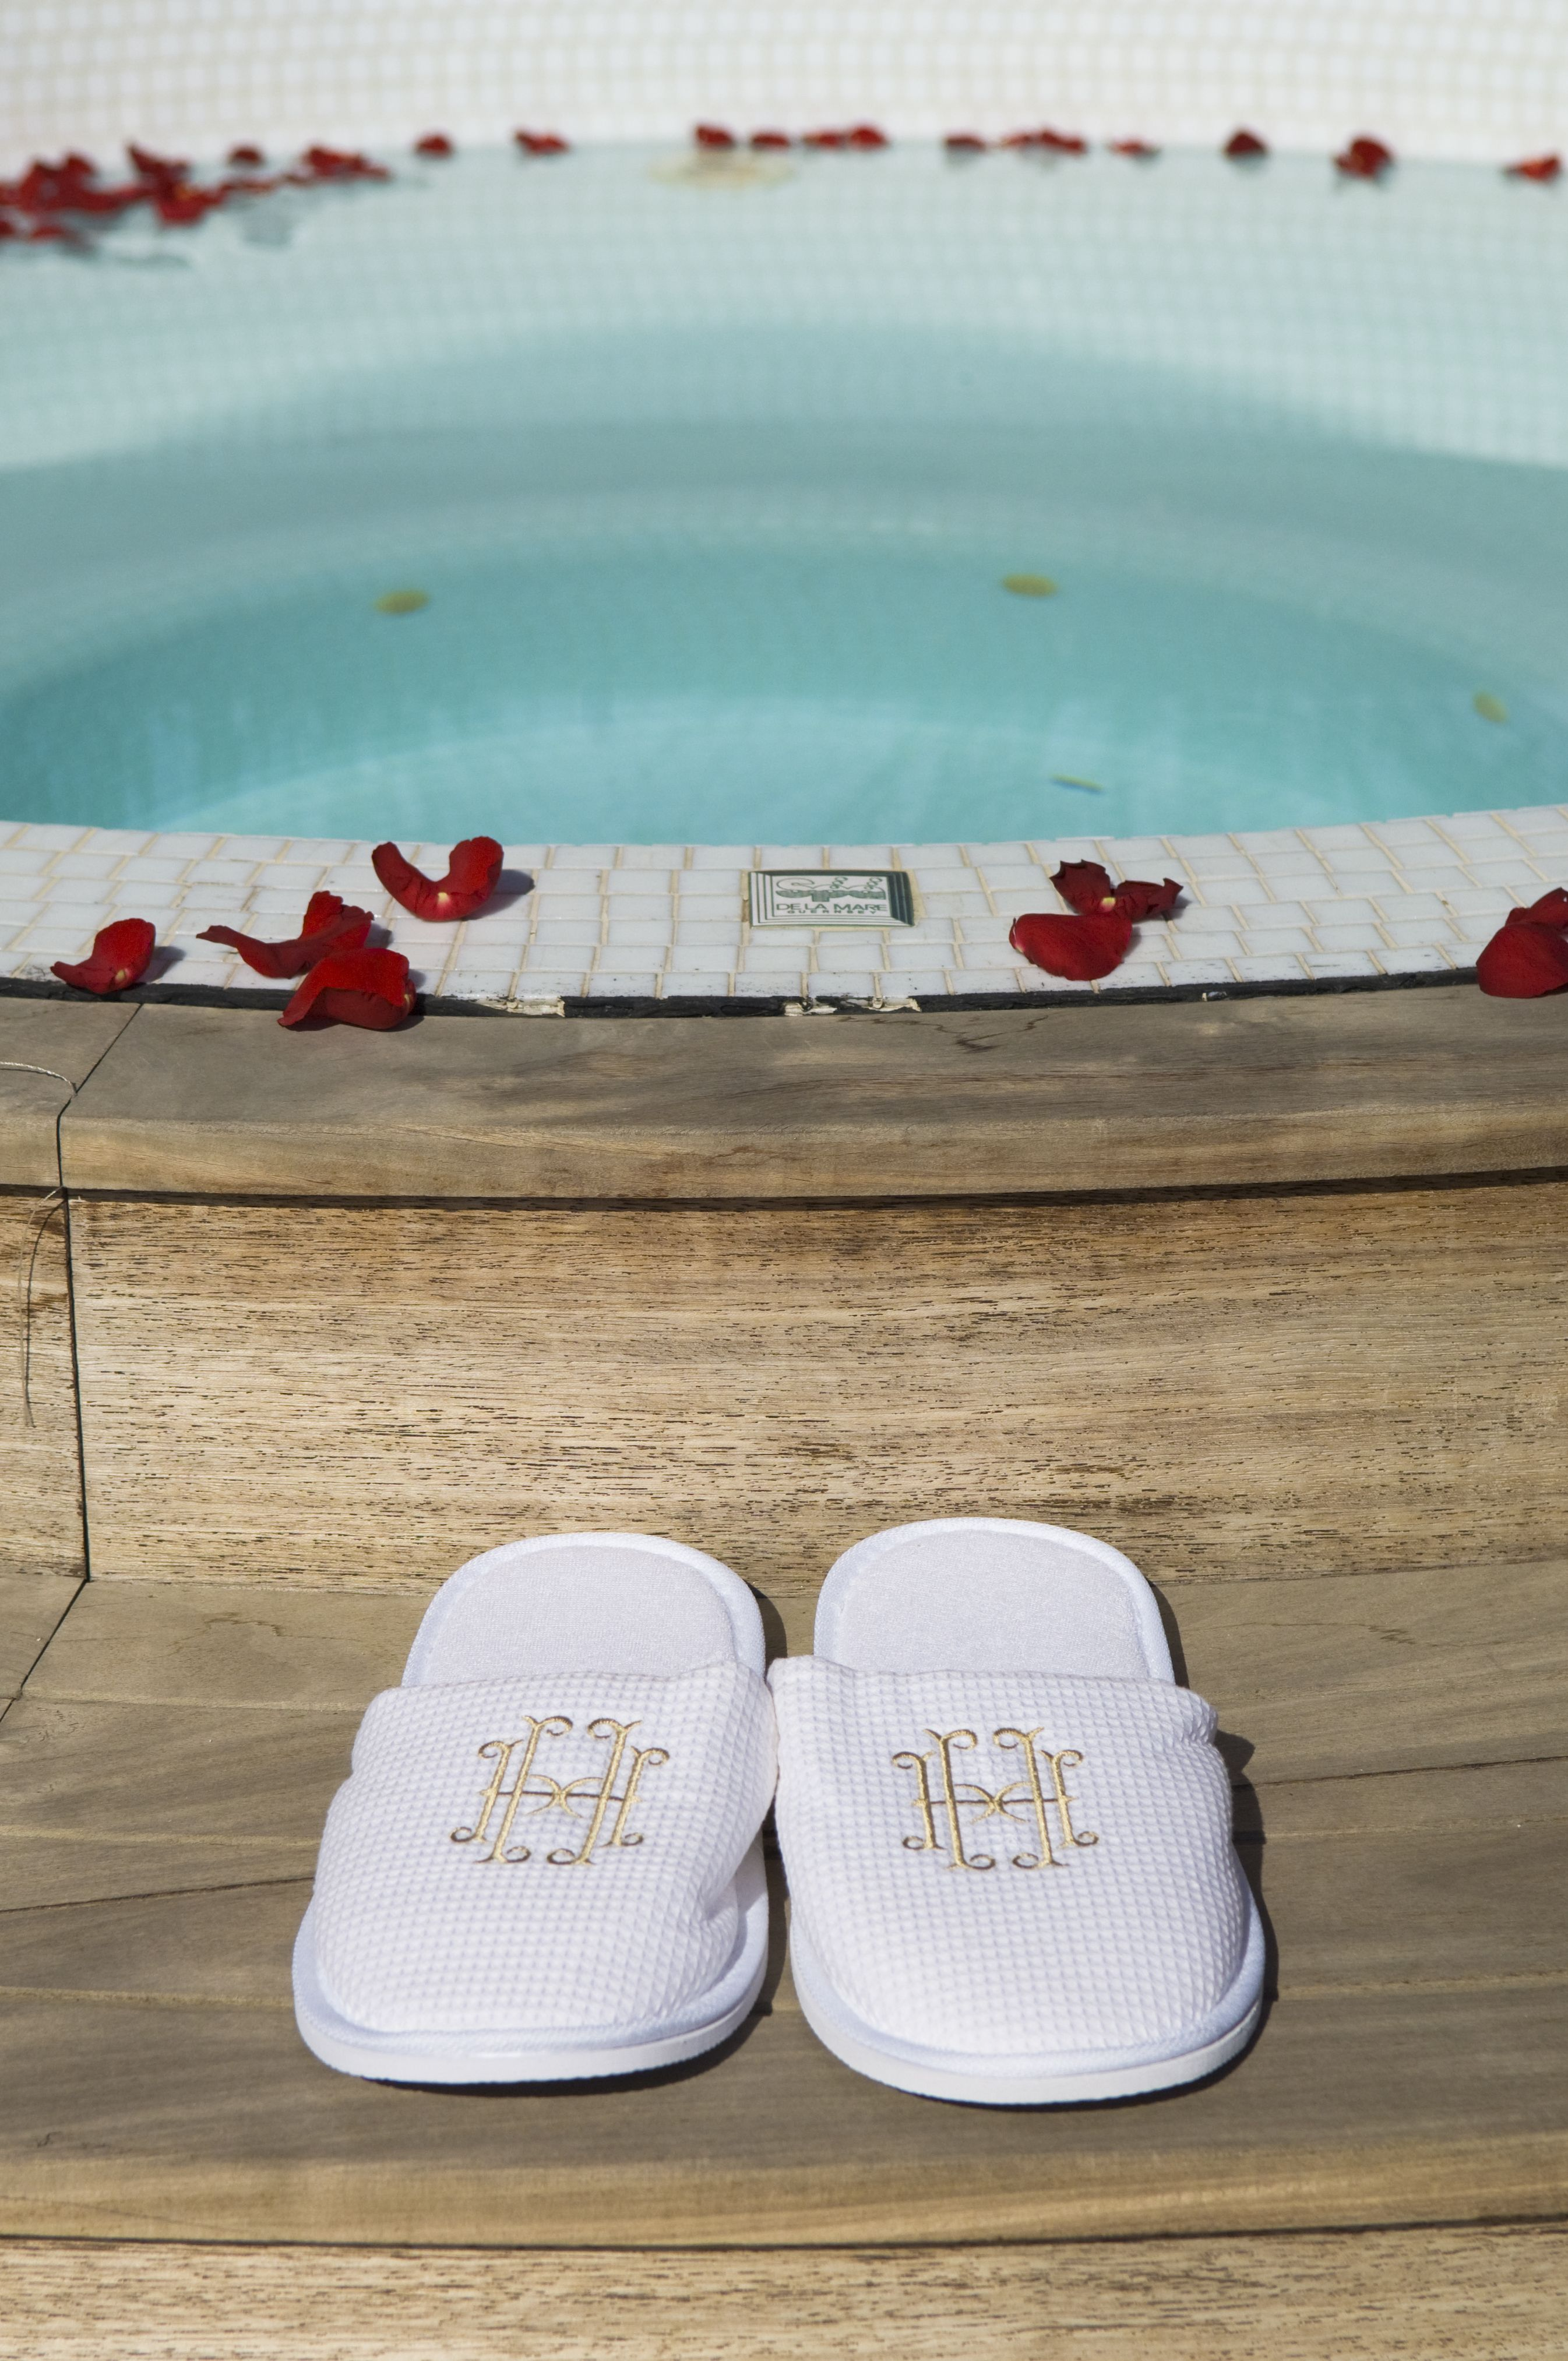 Jacuzzi time at the H´tel Hermitage Monte Carlo